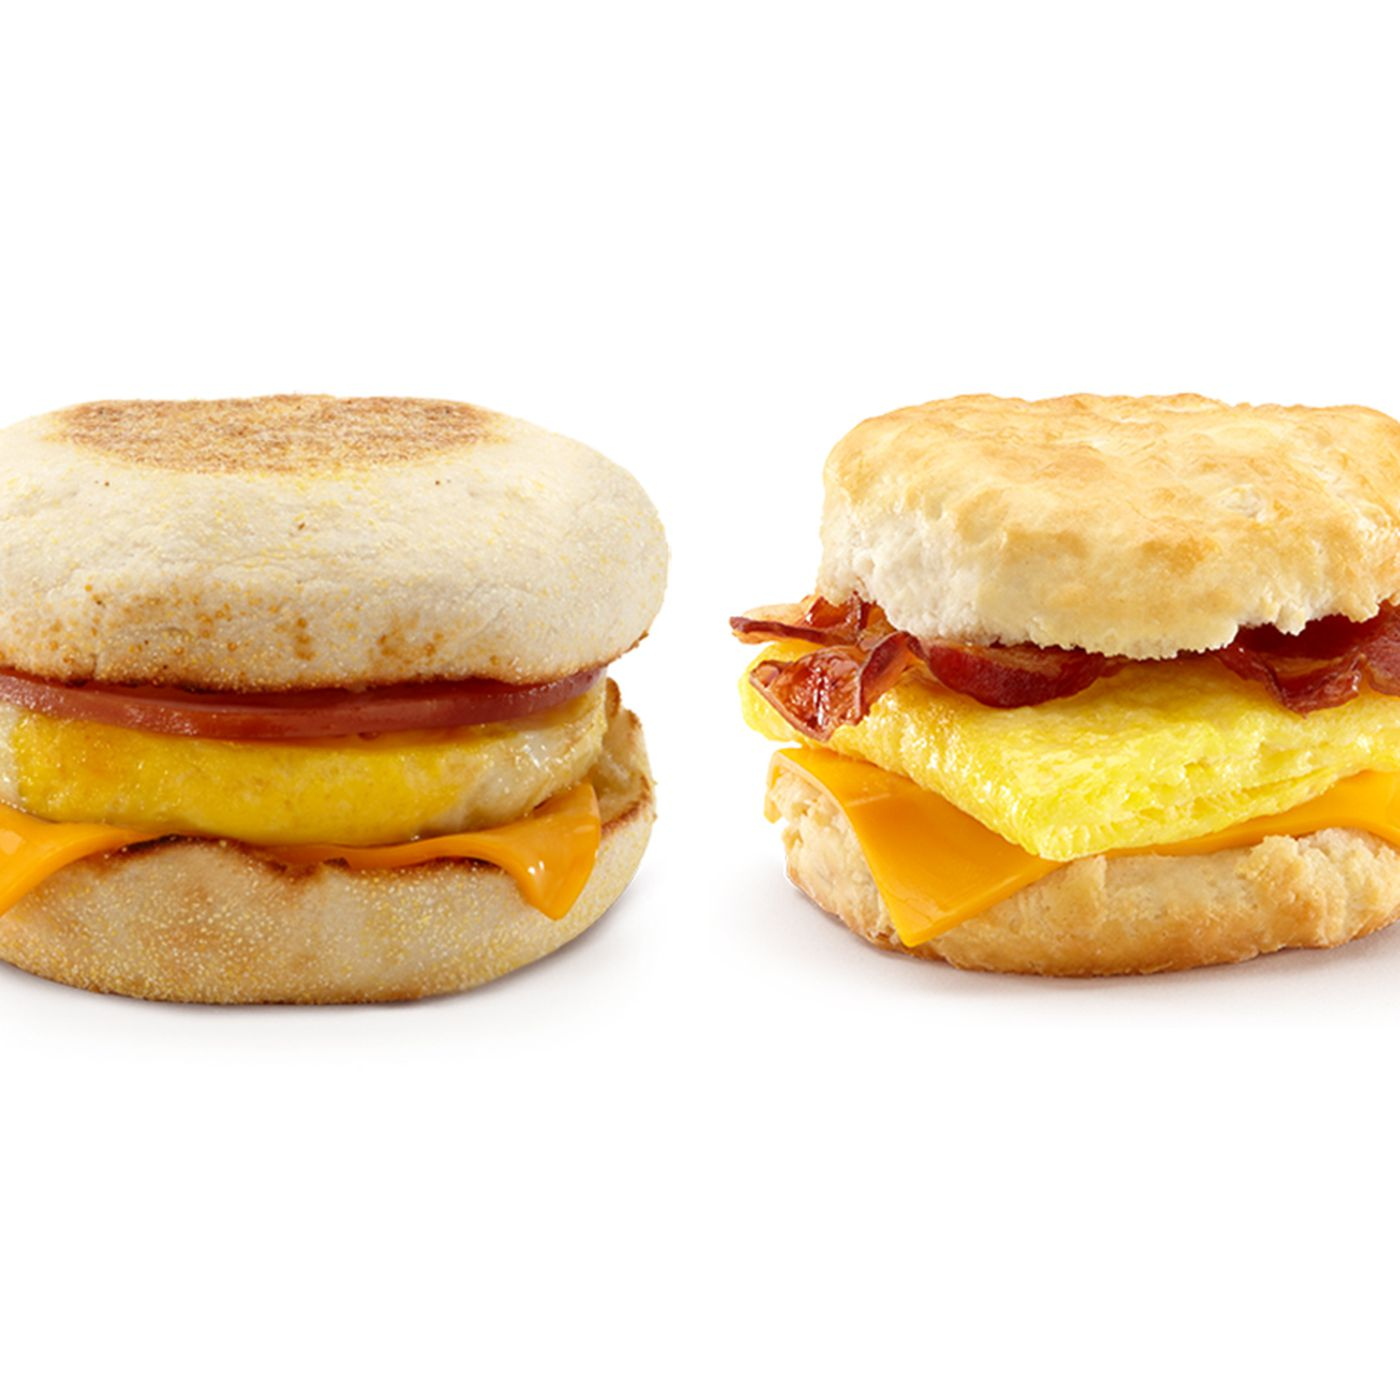 Mcmuffins Vs Biscuits Where Does Your Mcdonald S Breakfast Allegiance Lie Eater